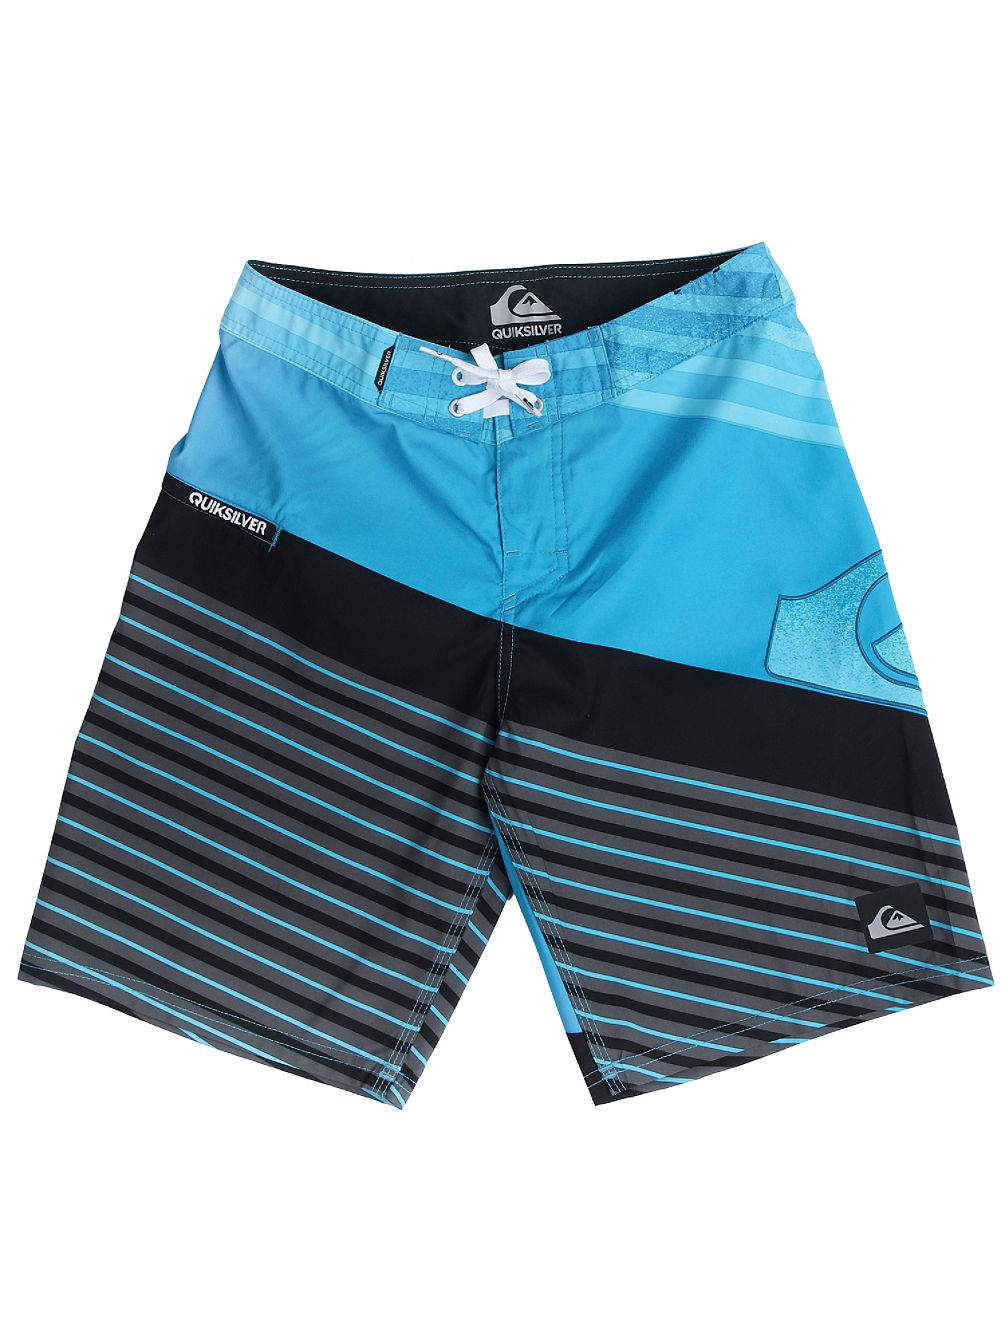 incline-log-17-boardshorts-boys